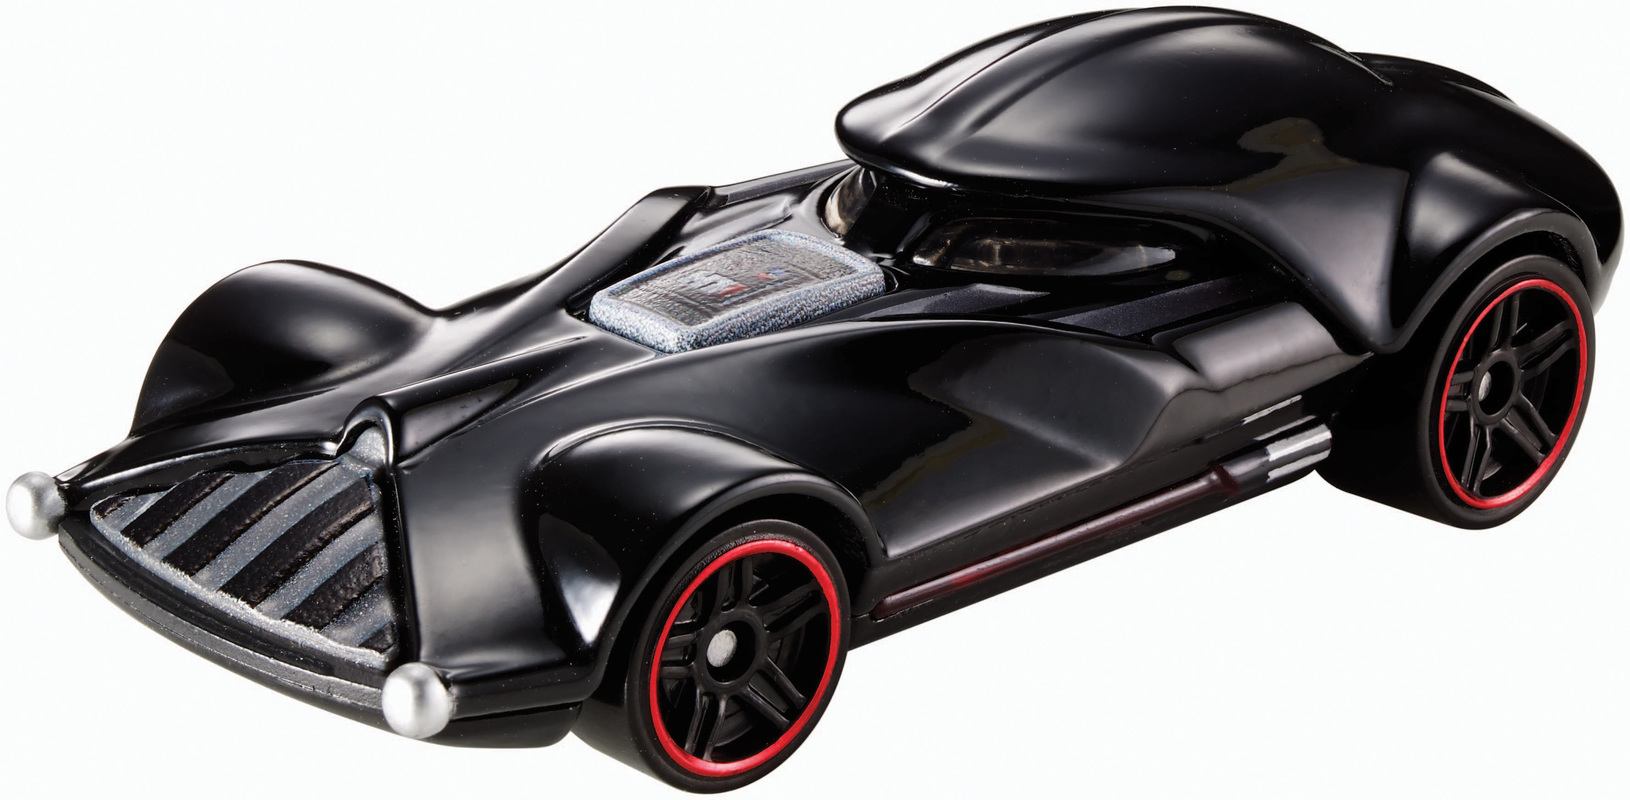 hot wheels star wars darth vadar character car shop. Black Bedroom Furniture Sets. Home Design Ideas